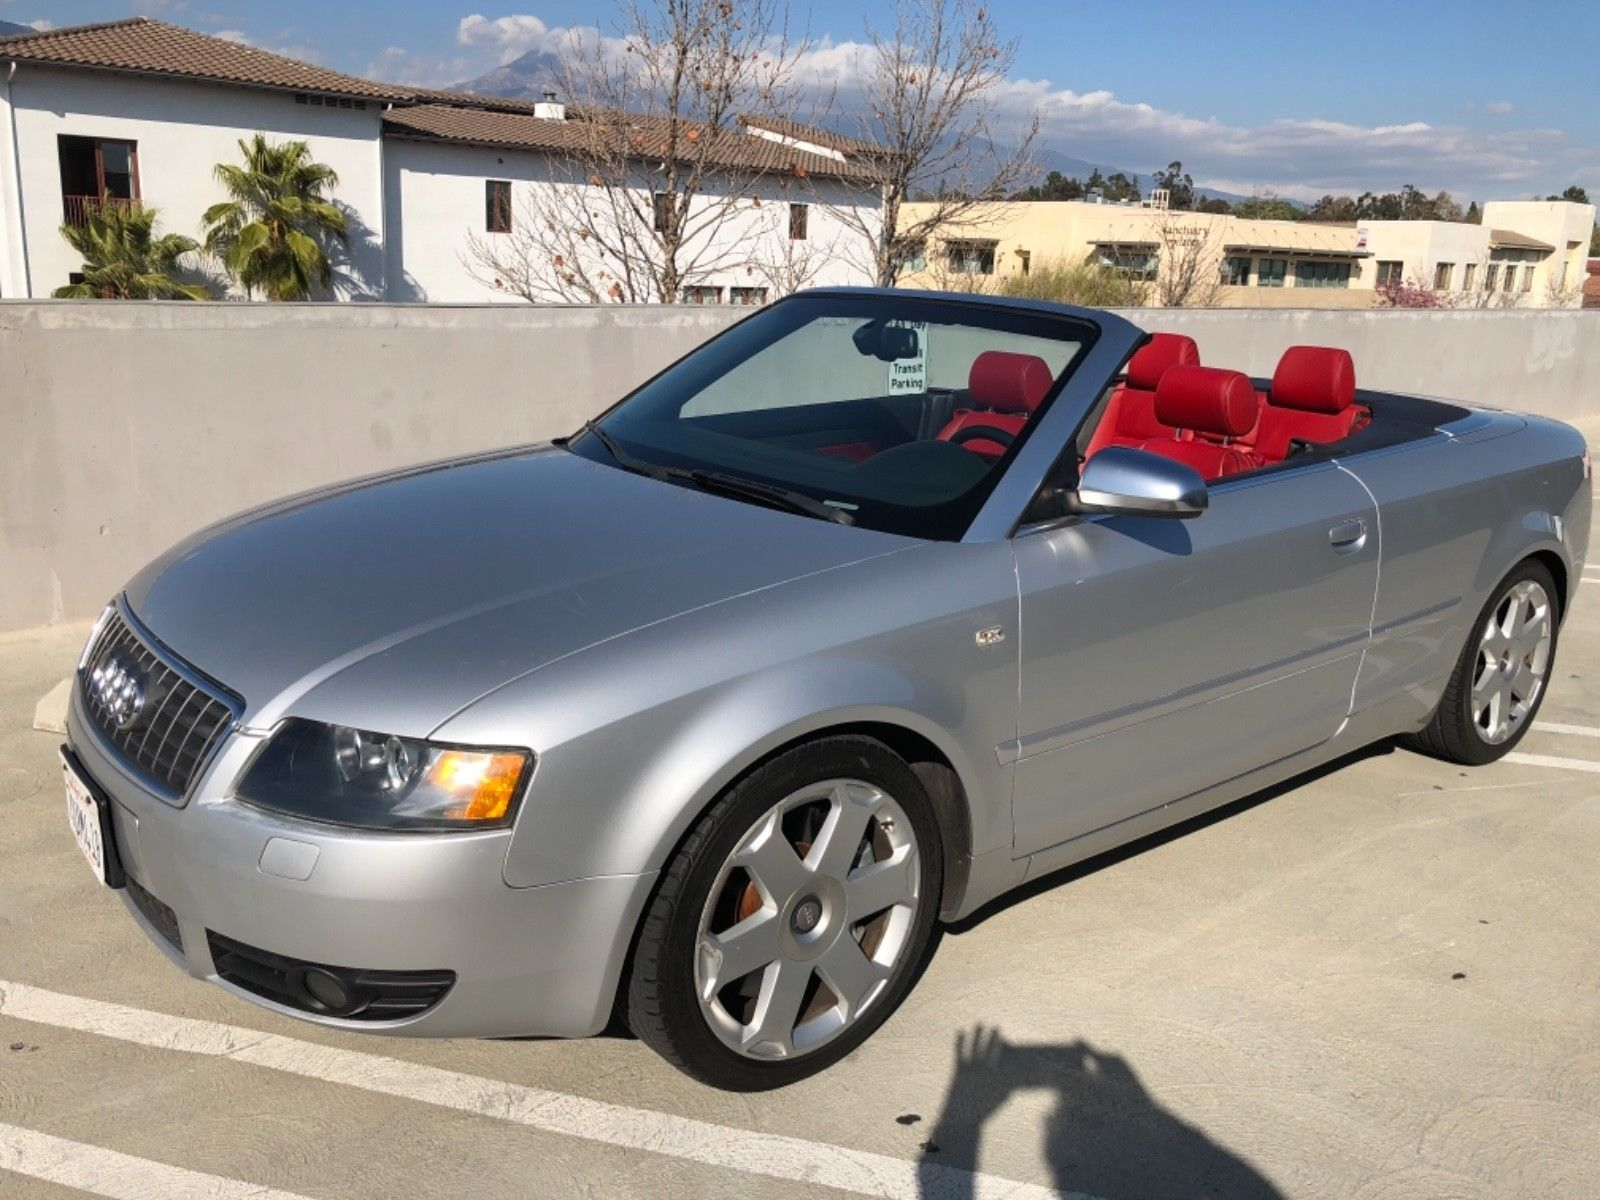 make turismo find located claremont offered audi with ca or go here daily offer for this it days ebay red sale to in seats buy convertible on now